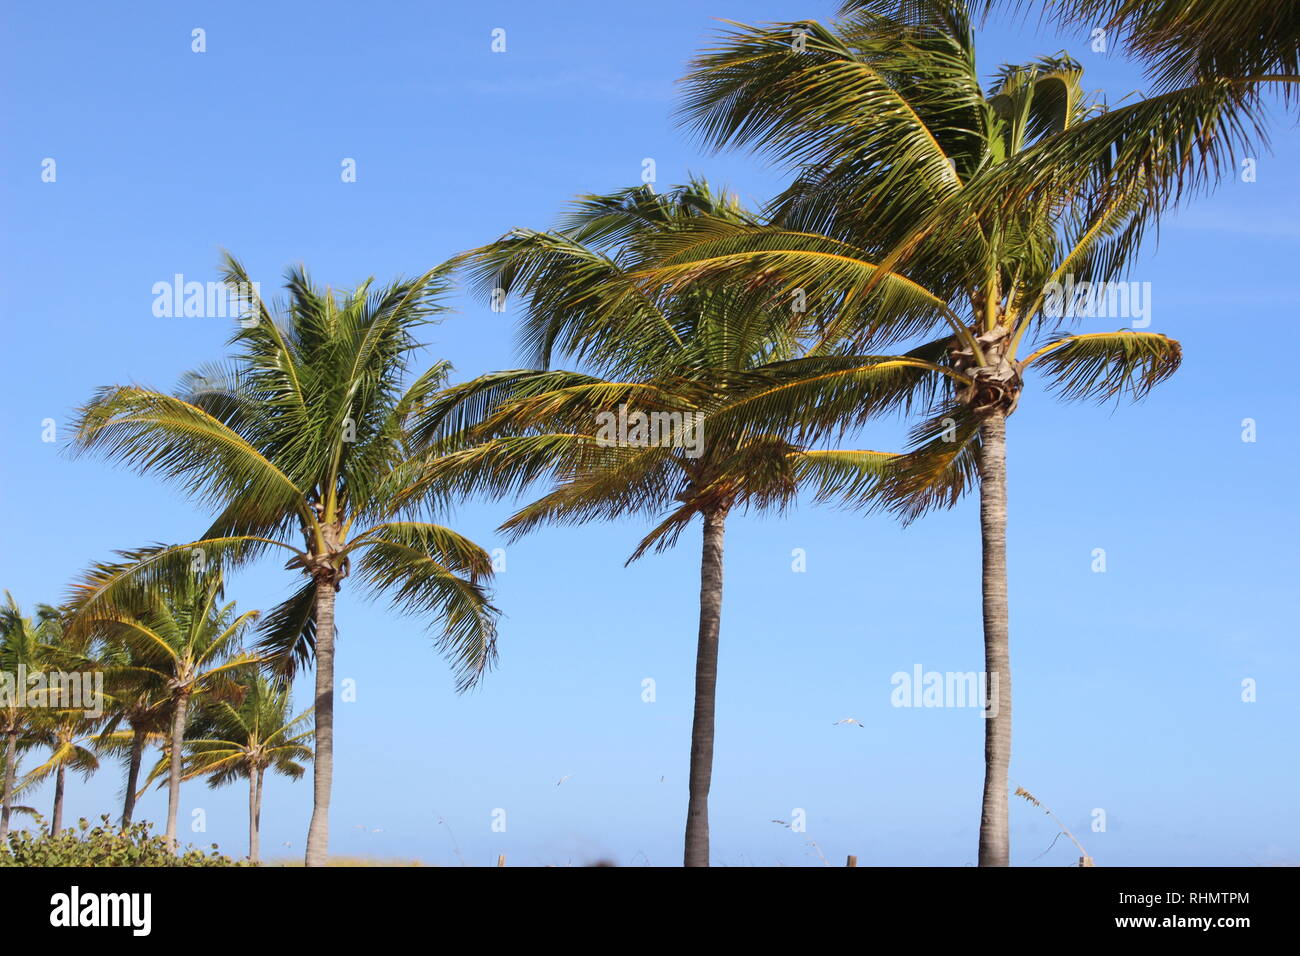 Alle beach themed in Florida Fort Lauderdale Beach. Stockfoto